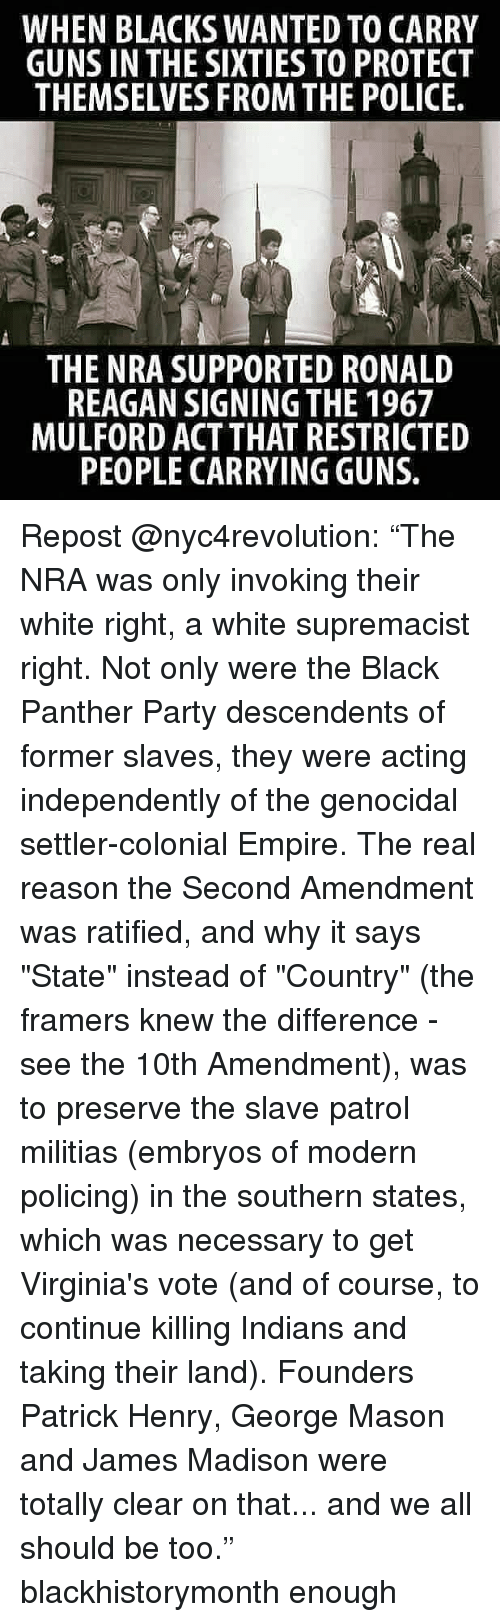 """Empire, Guns, and Memes: WHEN BLACKS WANTED TO CARRY  GUNS IN THE SIXTIES TO PROTECT  THEMSELVES FROM THE POLICE  THE NRA SUPPORTED RONALD  REAGAN SIGNING THE 1967  MULFORD ACT THAT RESTRICTED  PEOPLE CARRYING GUNS. Repost @nyc4revolution: """"The NRA was only invoking their white right, a white supremacist right. Not only were the Black Panther Party descendents of former slaves, they were acting independently of the genocidal settler-colonial Empire. The real reason the Second Amendment was ratified, and why it says """"State"""" instead of """"Country"""" (the framers knew the difference - see the 10th Amendment), was to preserve the slave patrol militias (embryos of modern policing) in the southern states, which was necessary to get Virginia's vote (and of course, to continue killing Indians and taking their land). Founders Patrick Henry, George Mason and James Madison were totally clear on that... and we all should be too."""" blackhistorymonth enough"""